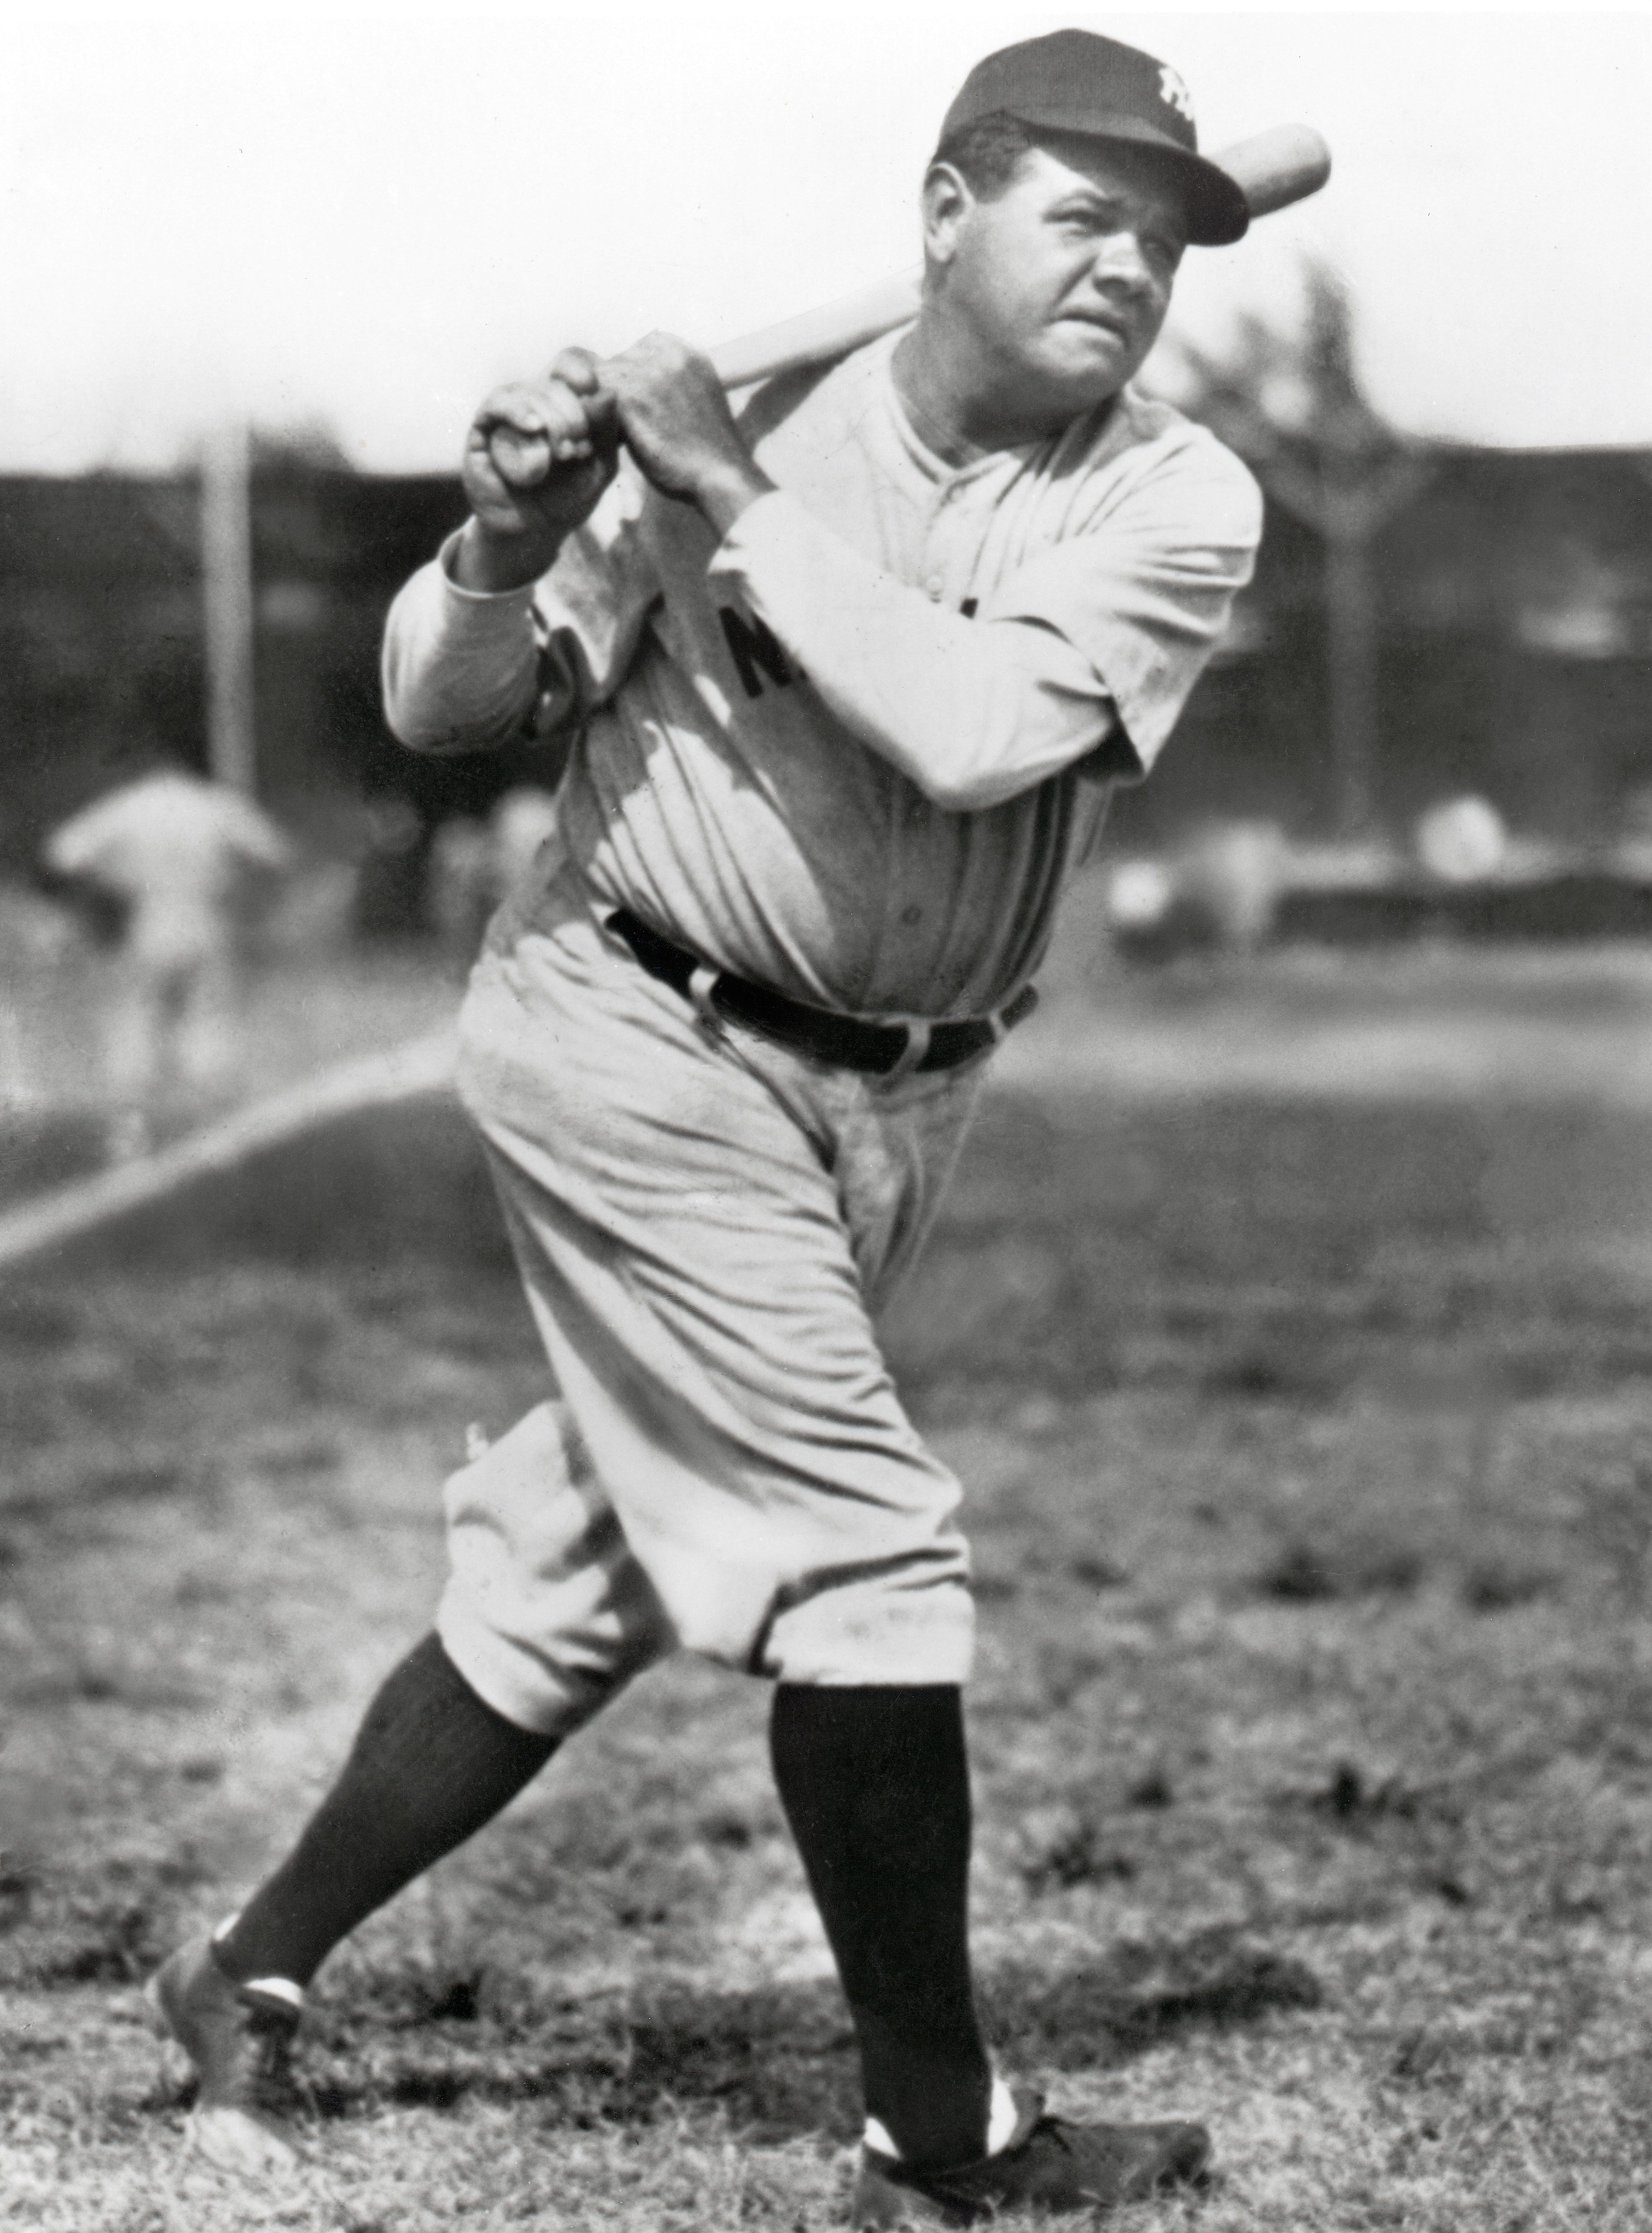 3 Days – Babe Ruth « Grand Openings Babe Ruth